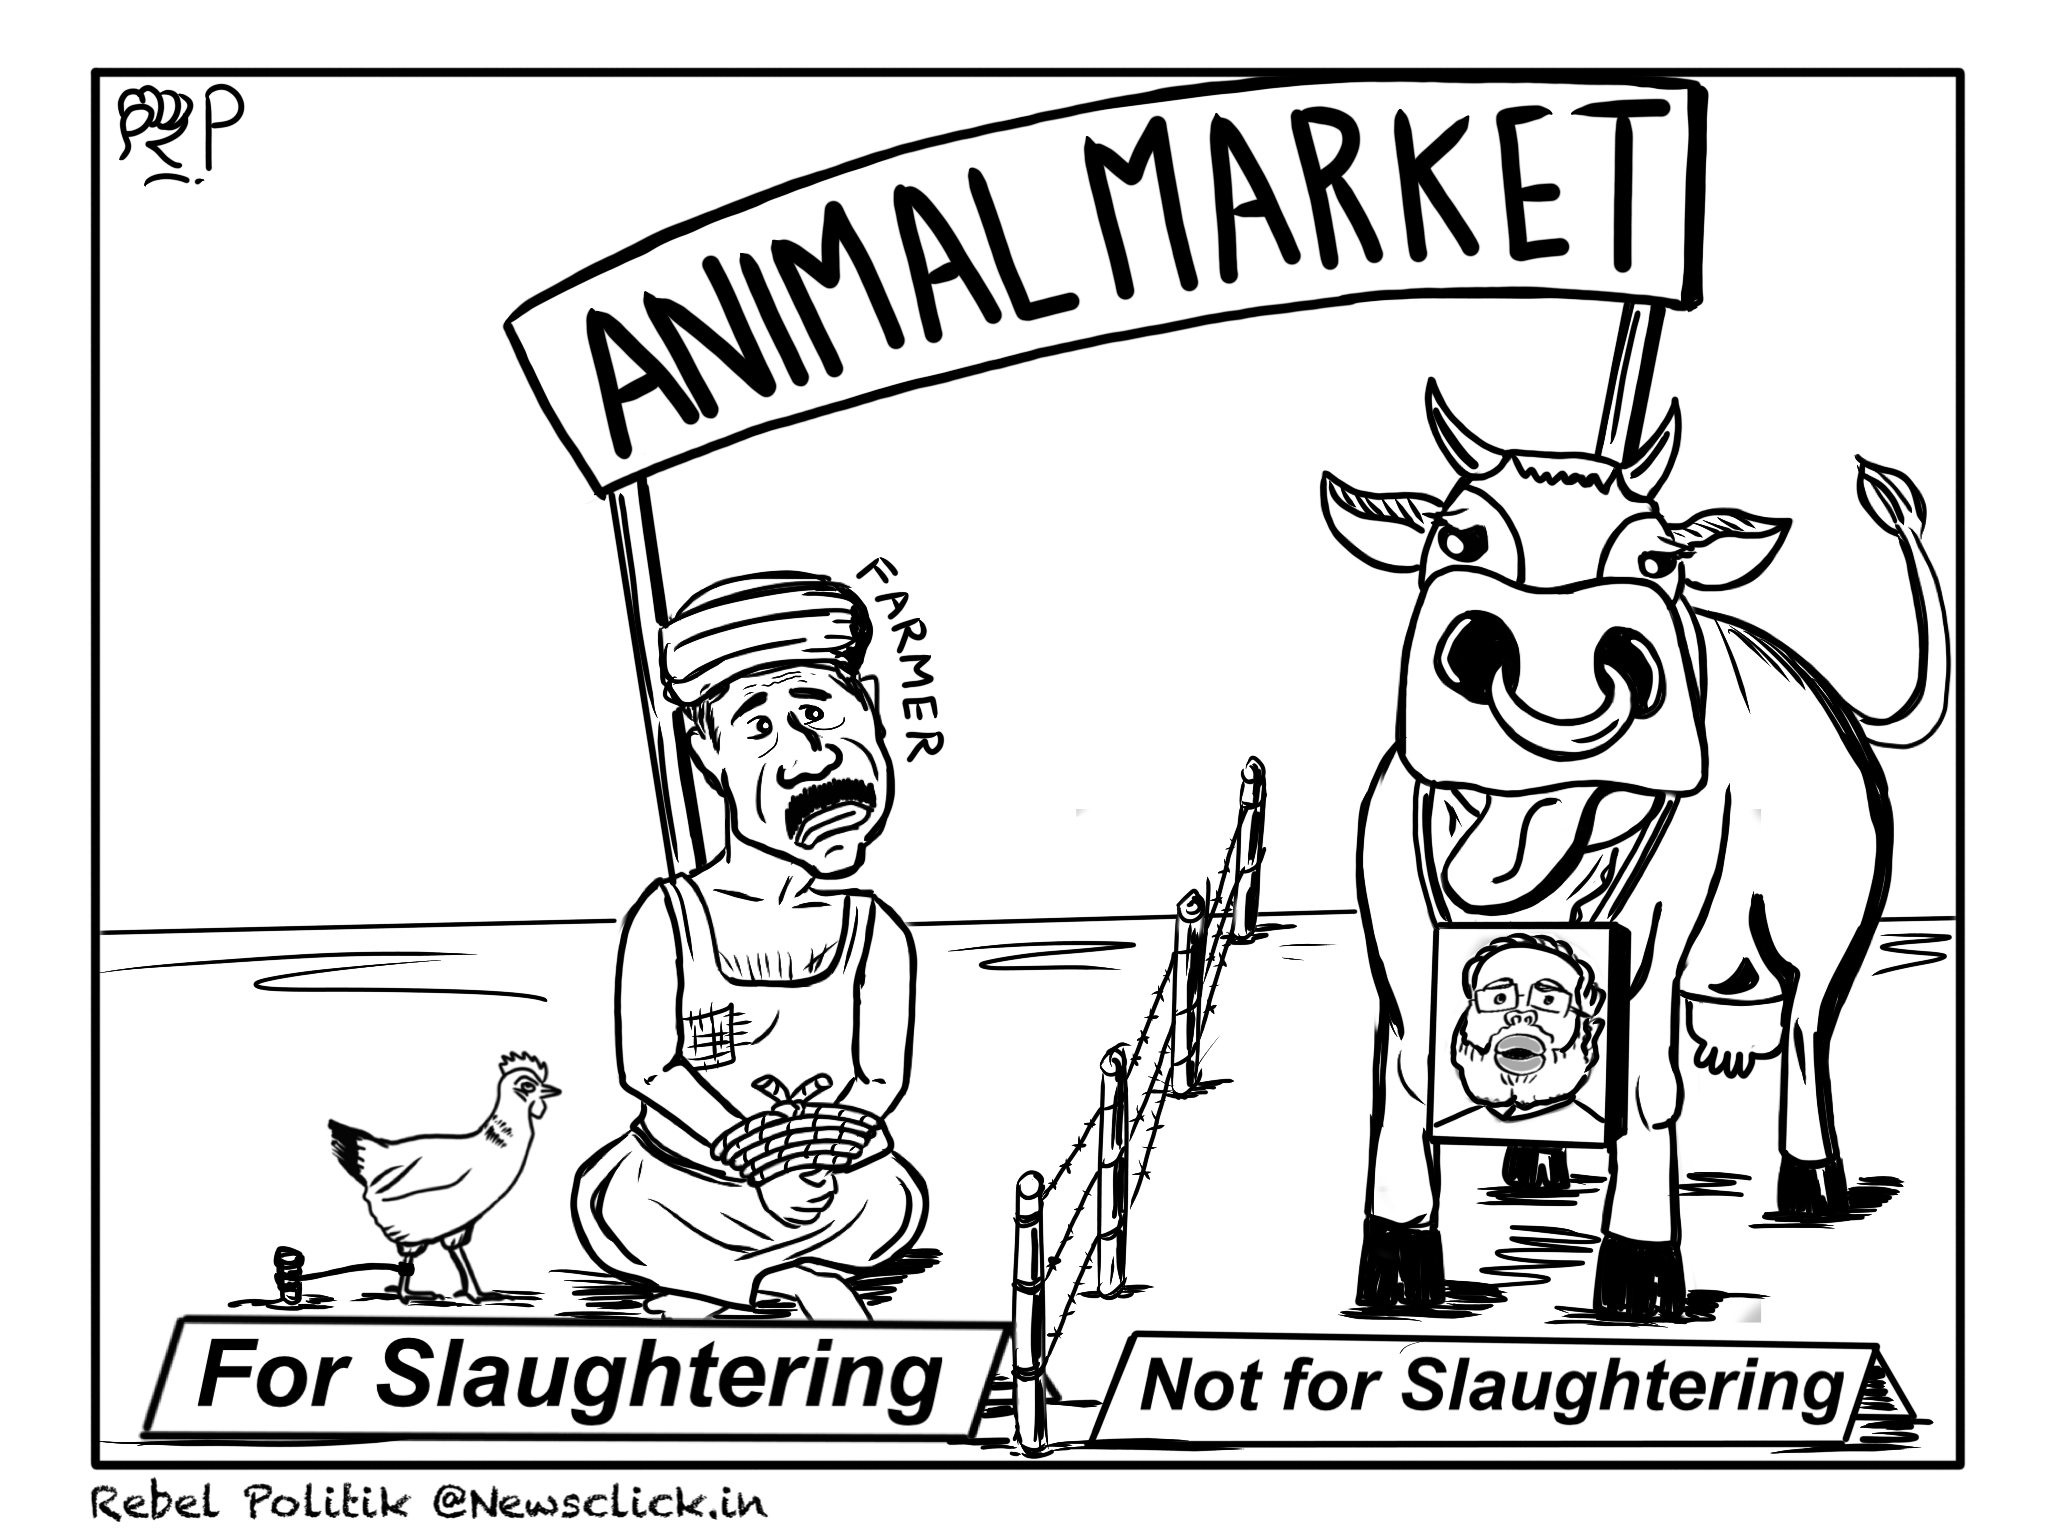 cattle slaughter ban will deepen the farmers� distress